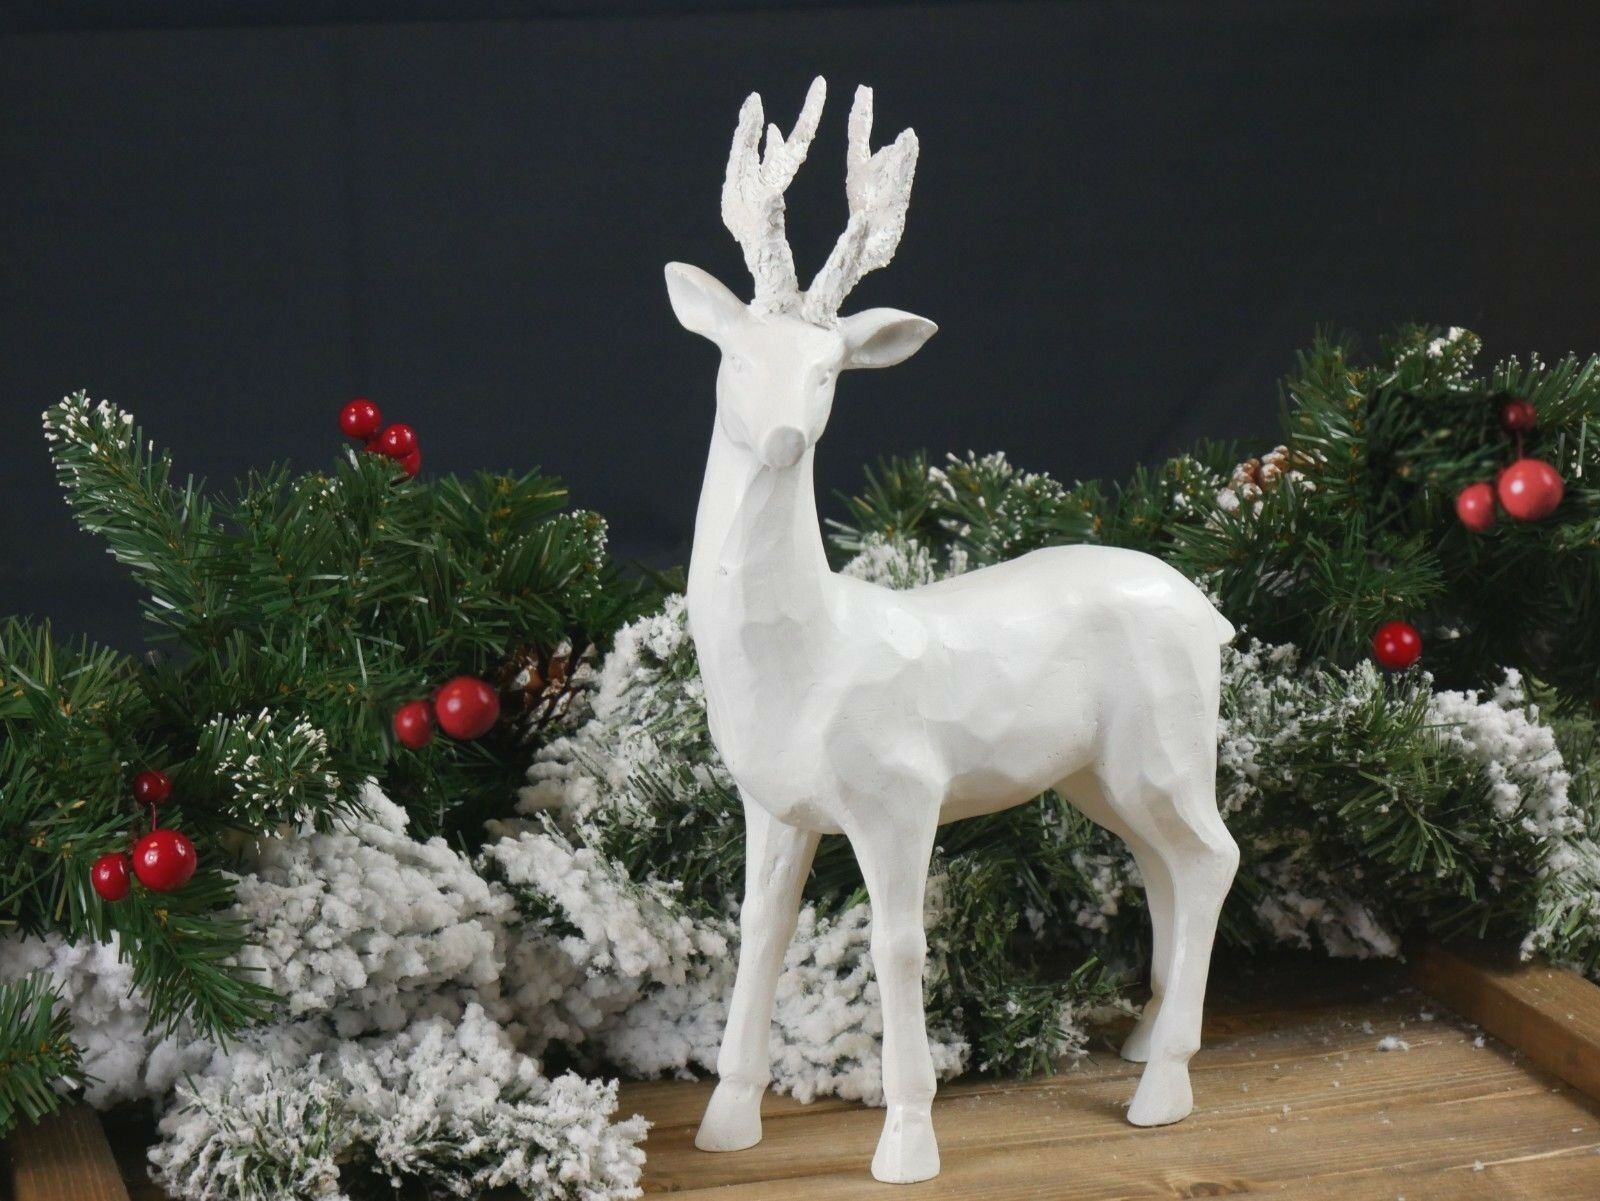 Large Standing Reindeer Stag Ornament White Christmas Decoration Shabby Chic Ebay Reindeer Statue White Christmas Decor Christmas Scenes